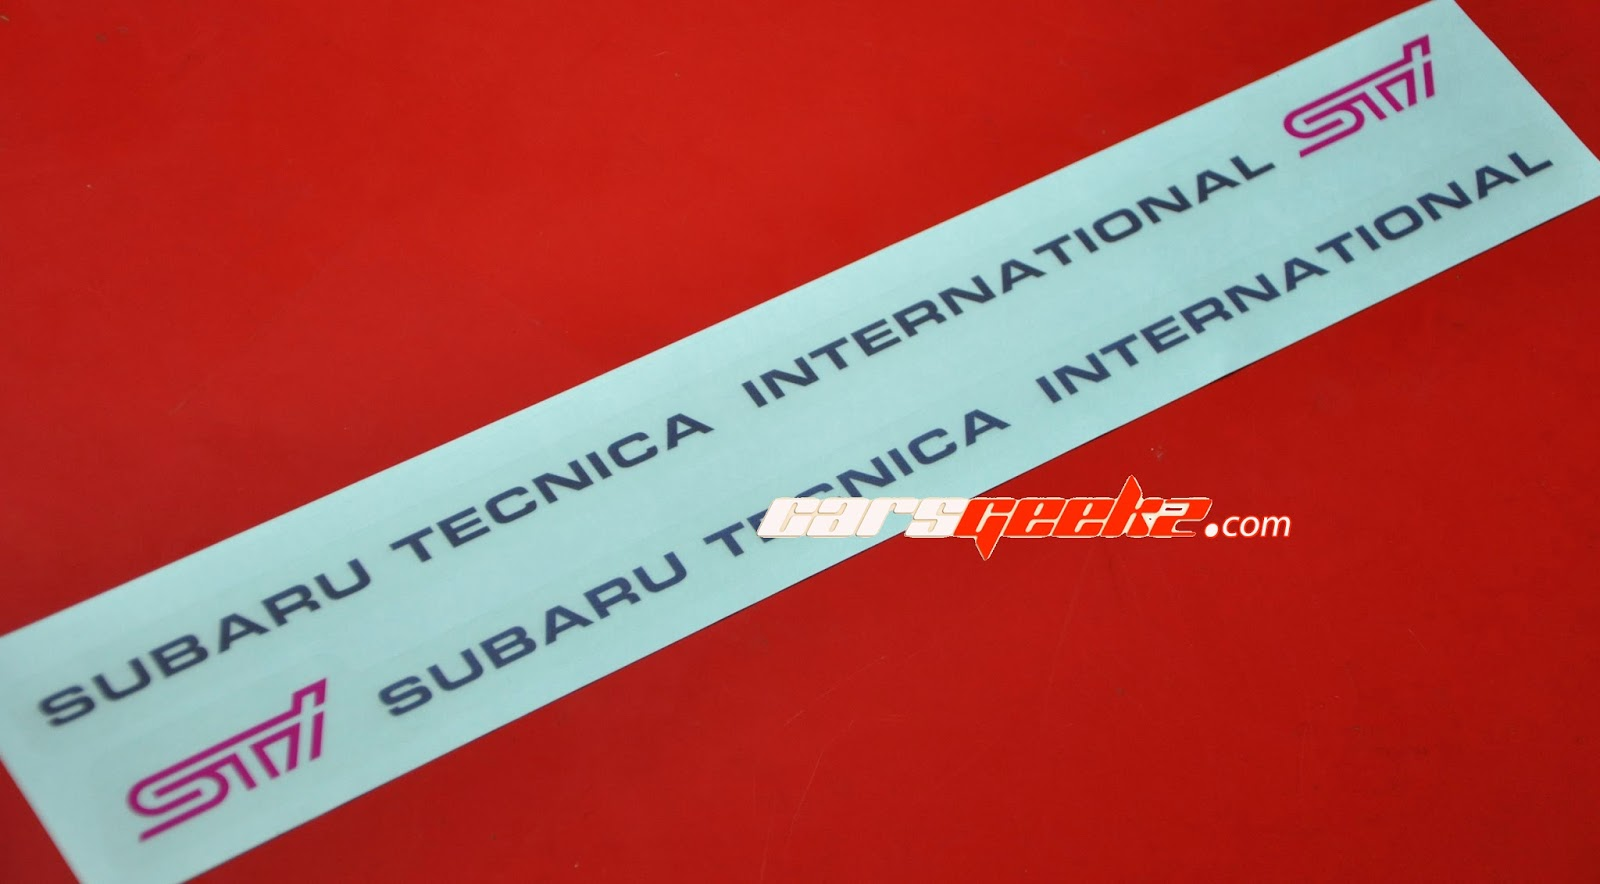 Subaru Tecnica International - STI Door Sticker OEM / decal / vinyl subaru